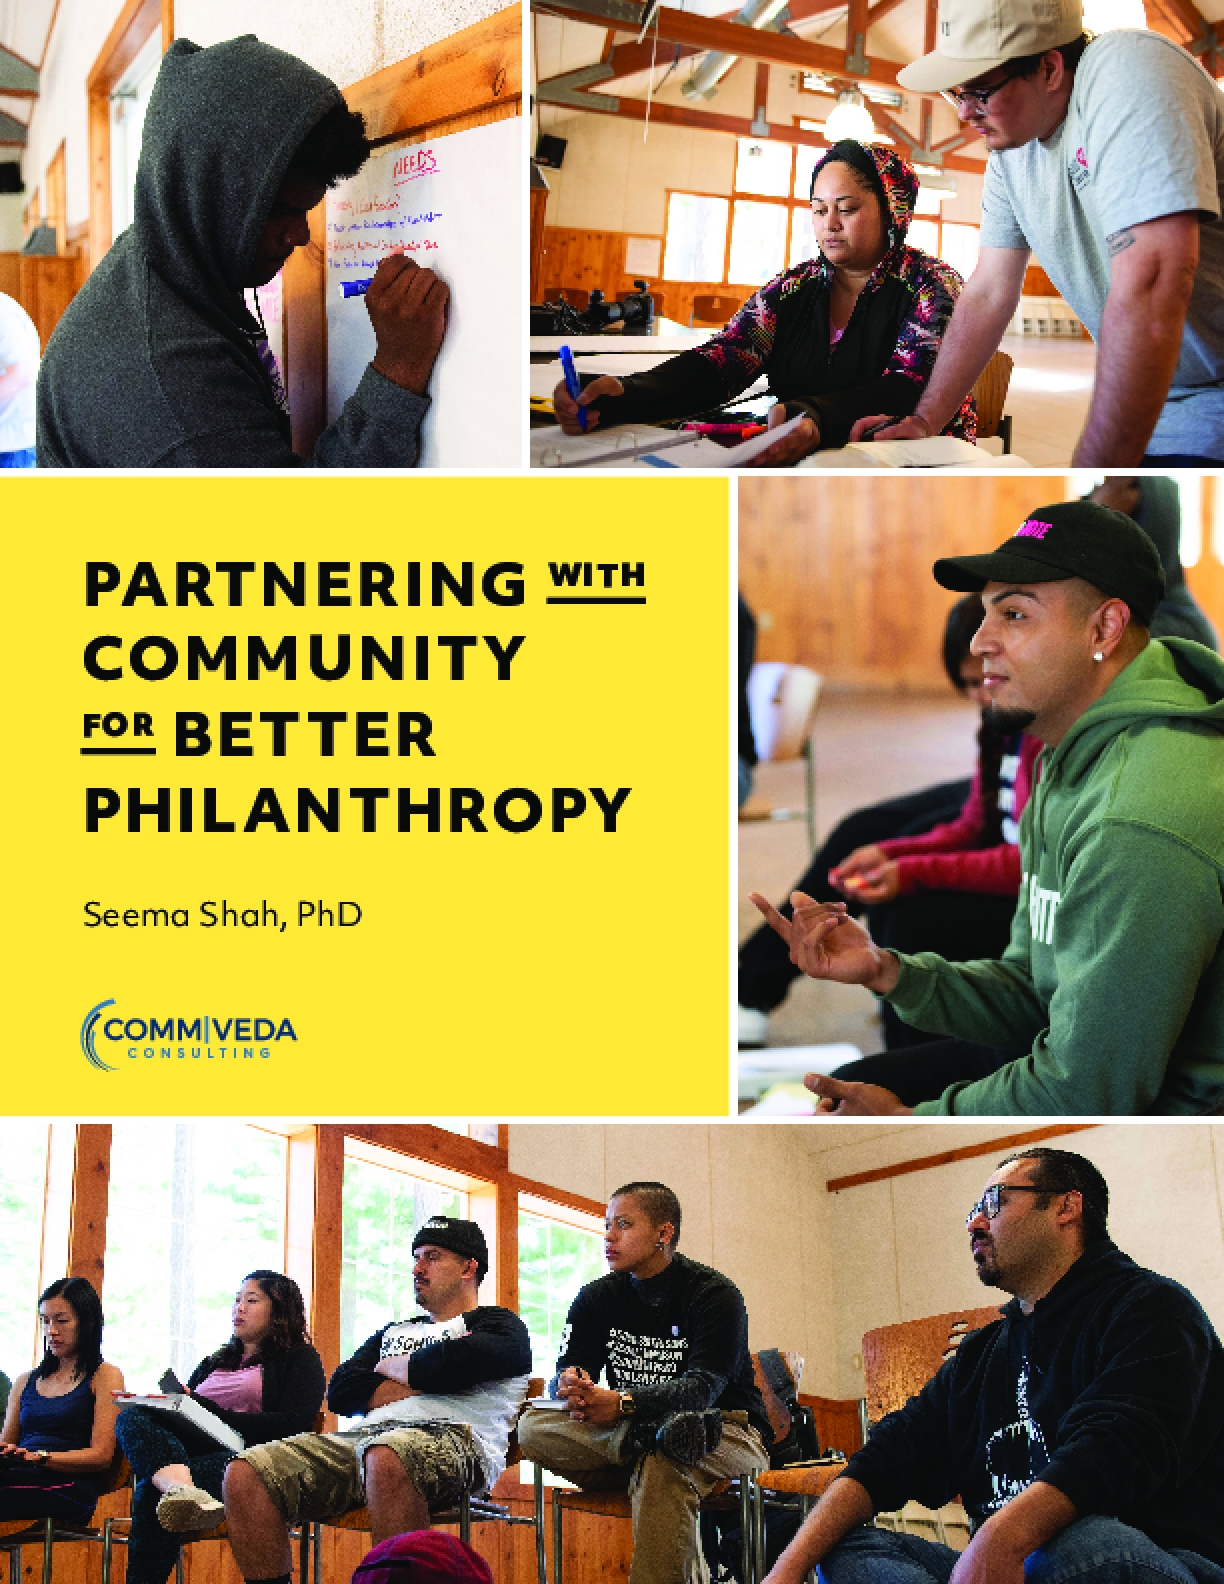 Partnering with Community for Better Philanthropy